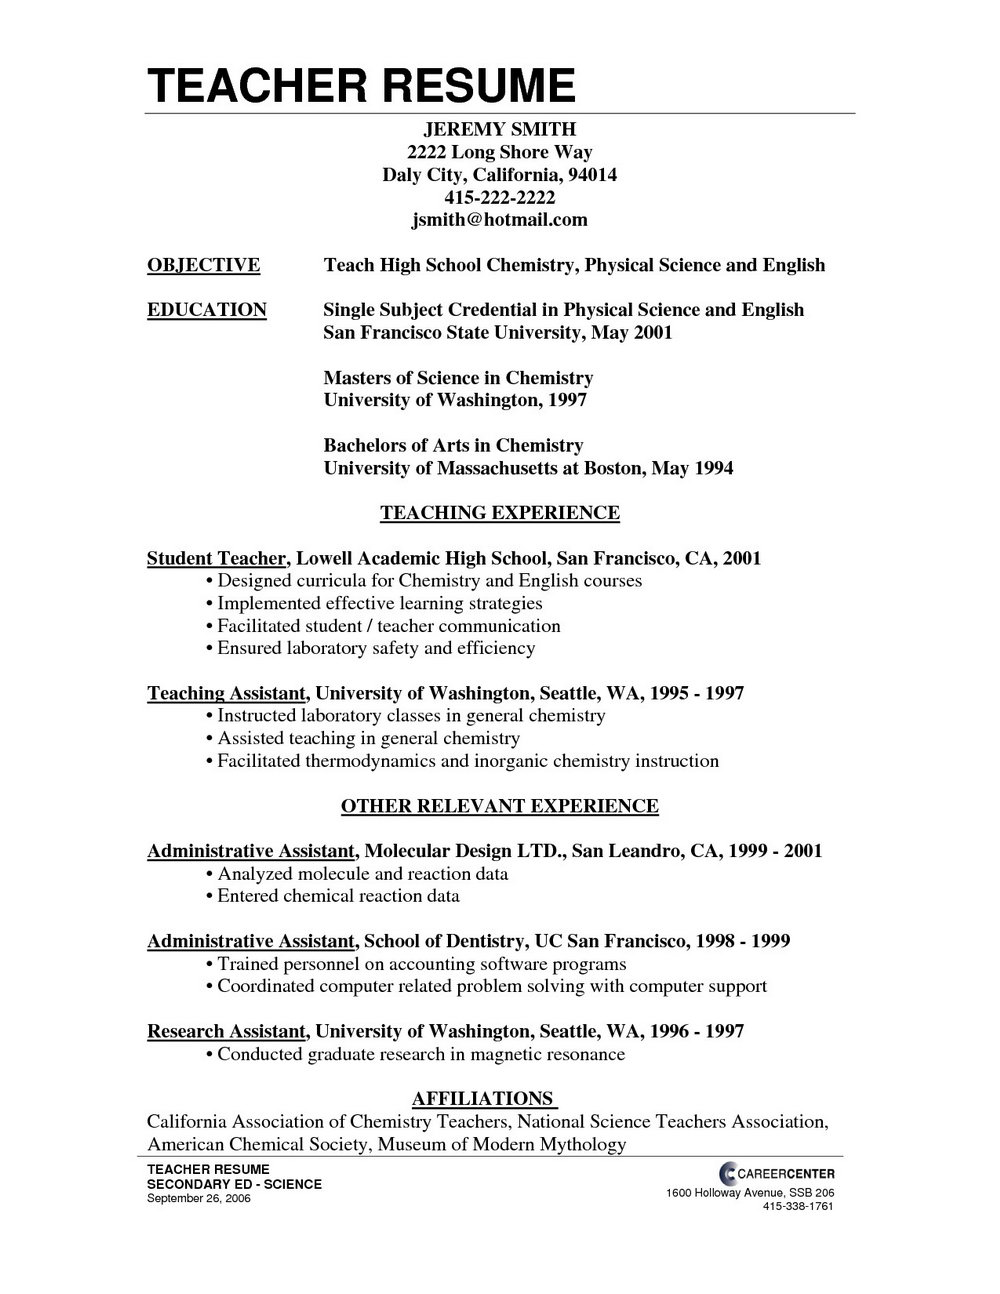 Teacher Resume Writing Service